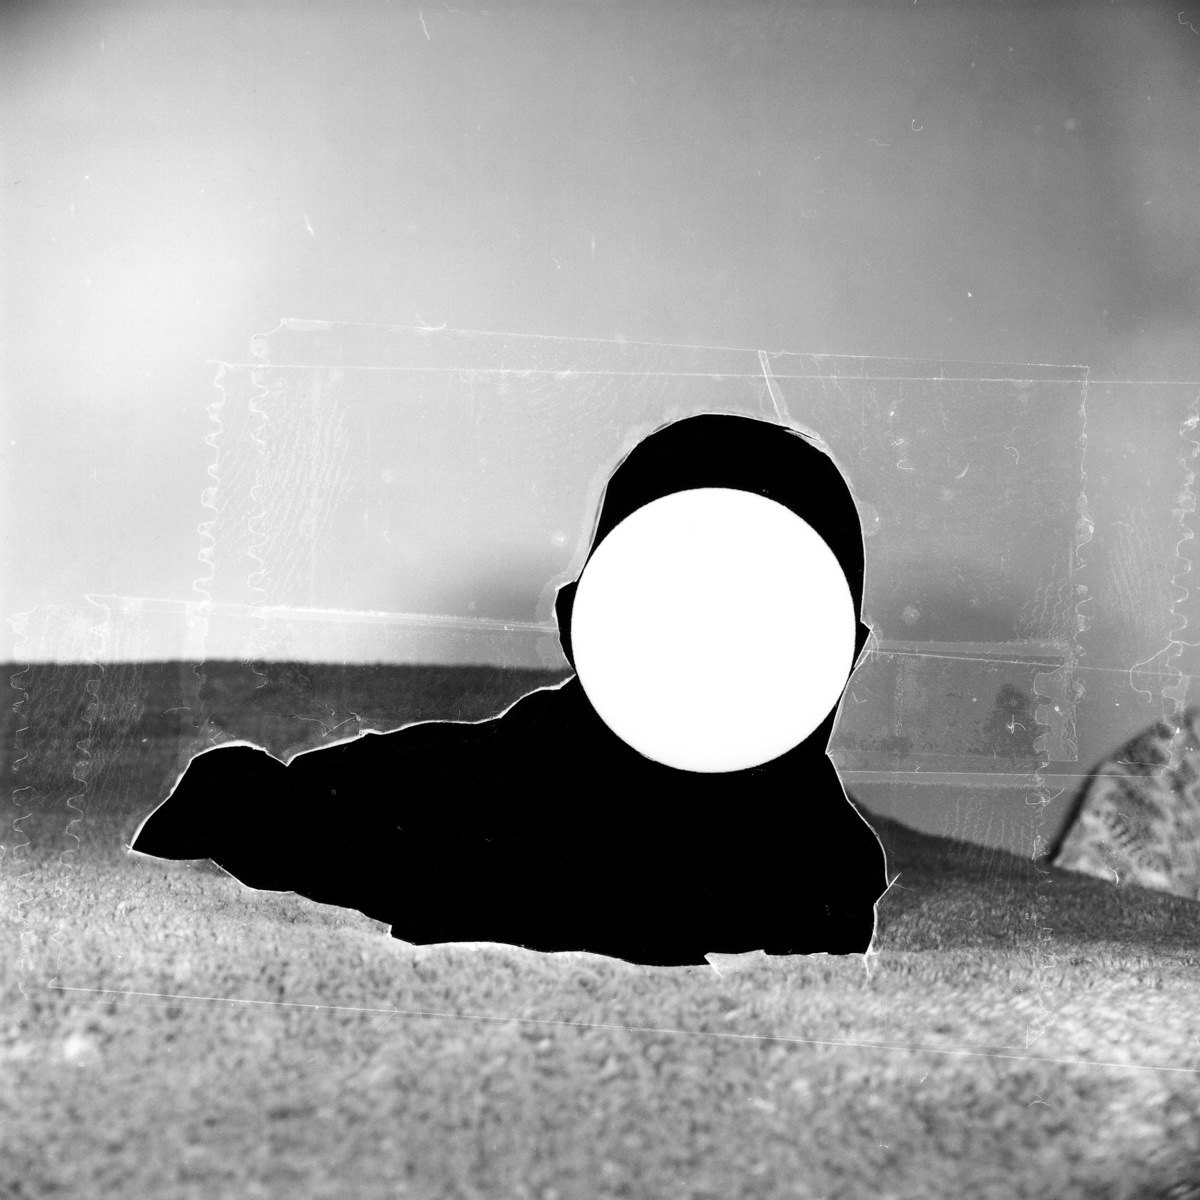 """""""0042"""" from the series The Children of Mars, by William Mokrynski"""